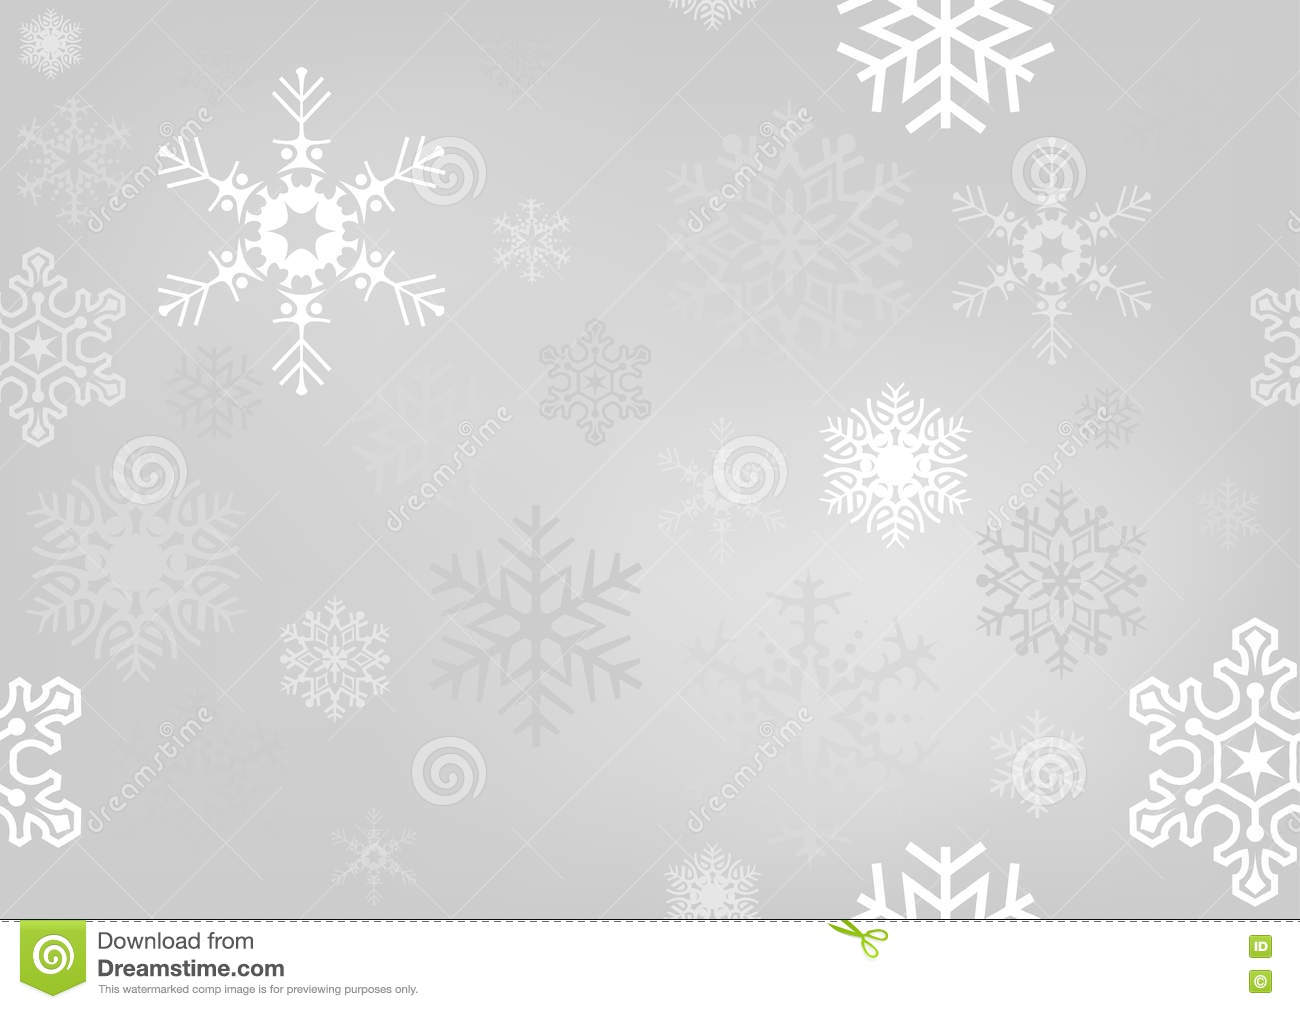 Falling Snow Wallpaper Download Silver Christmas Paper With Snowflakes Stock Vector